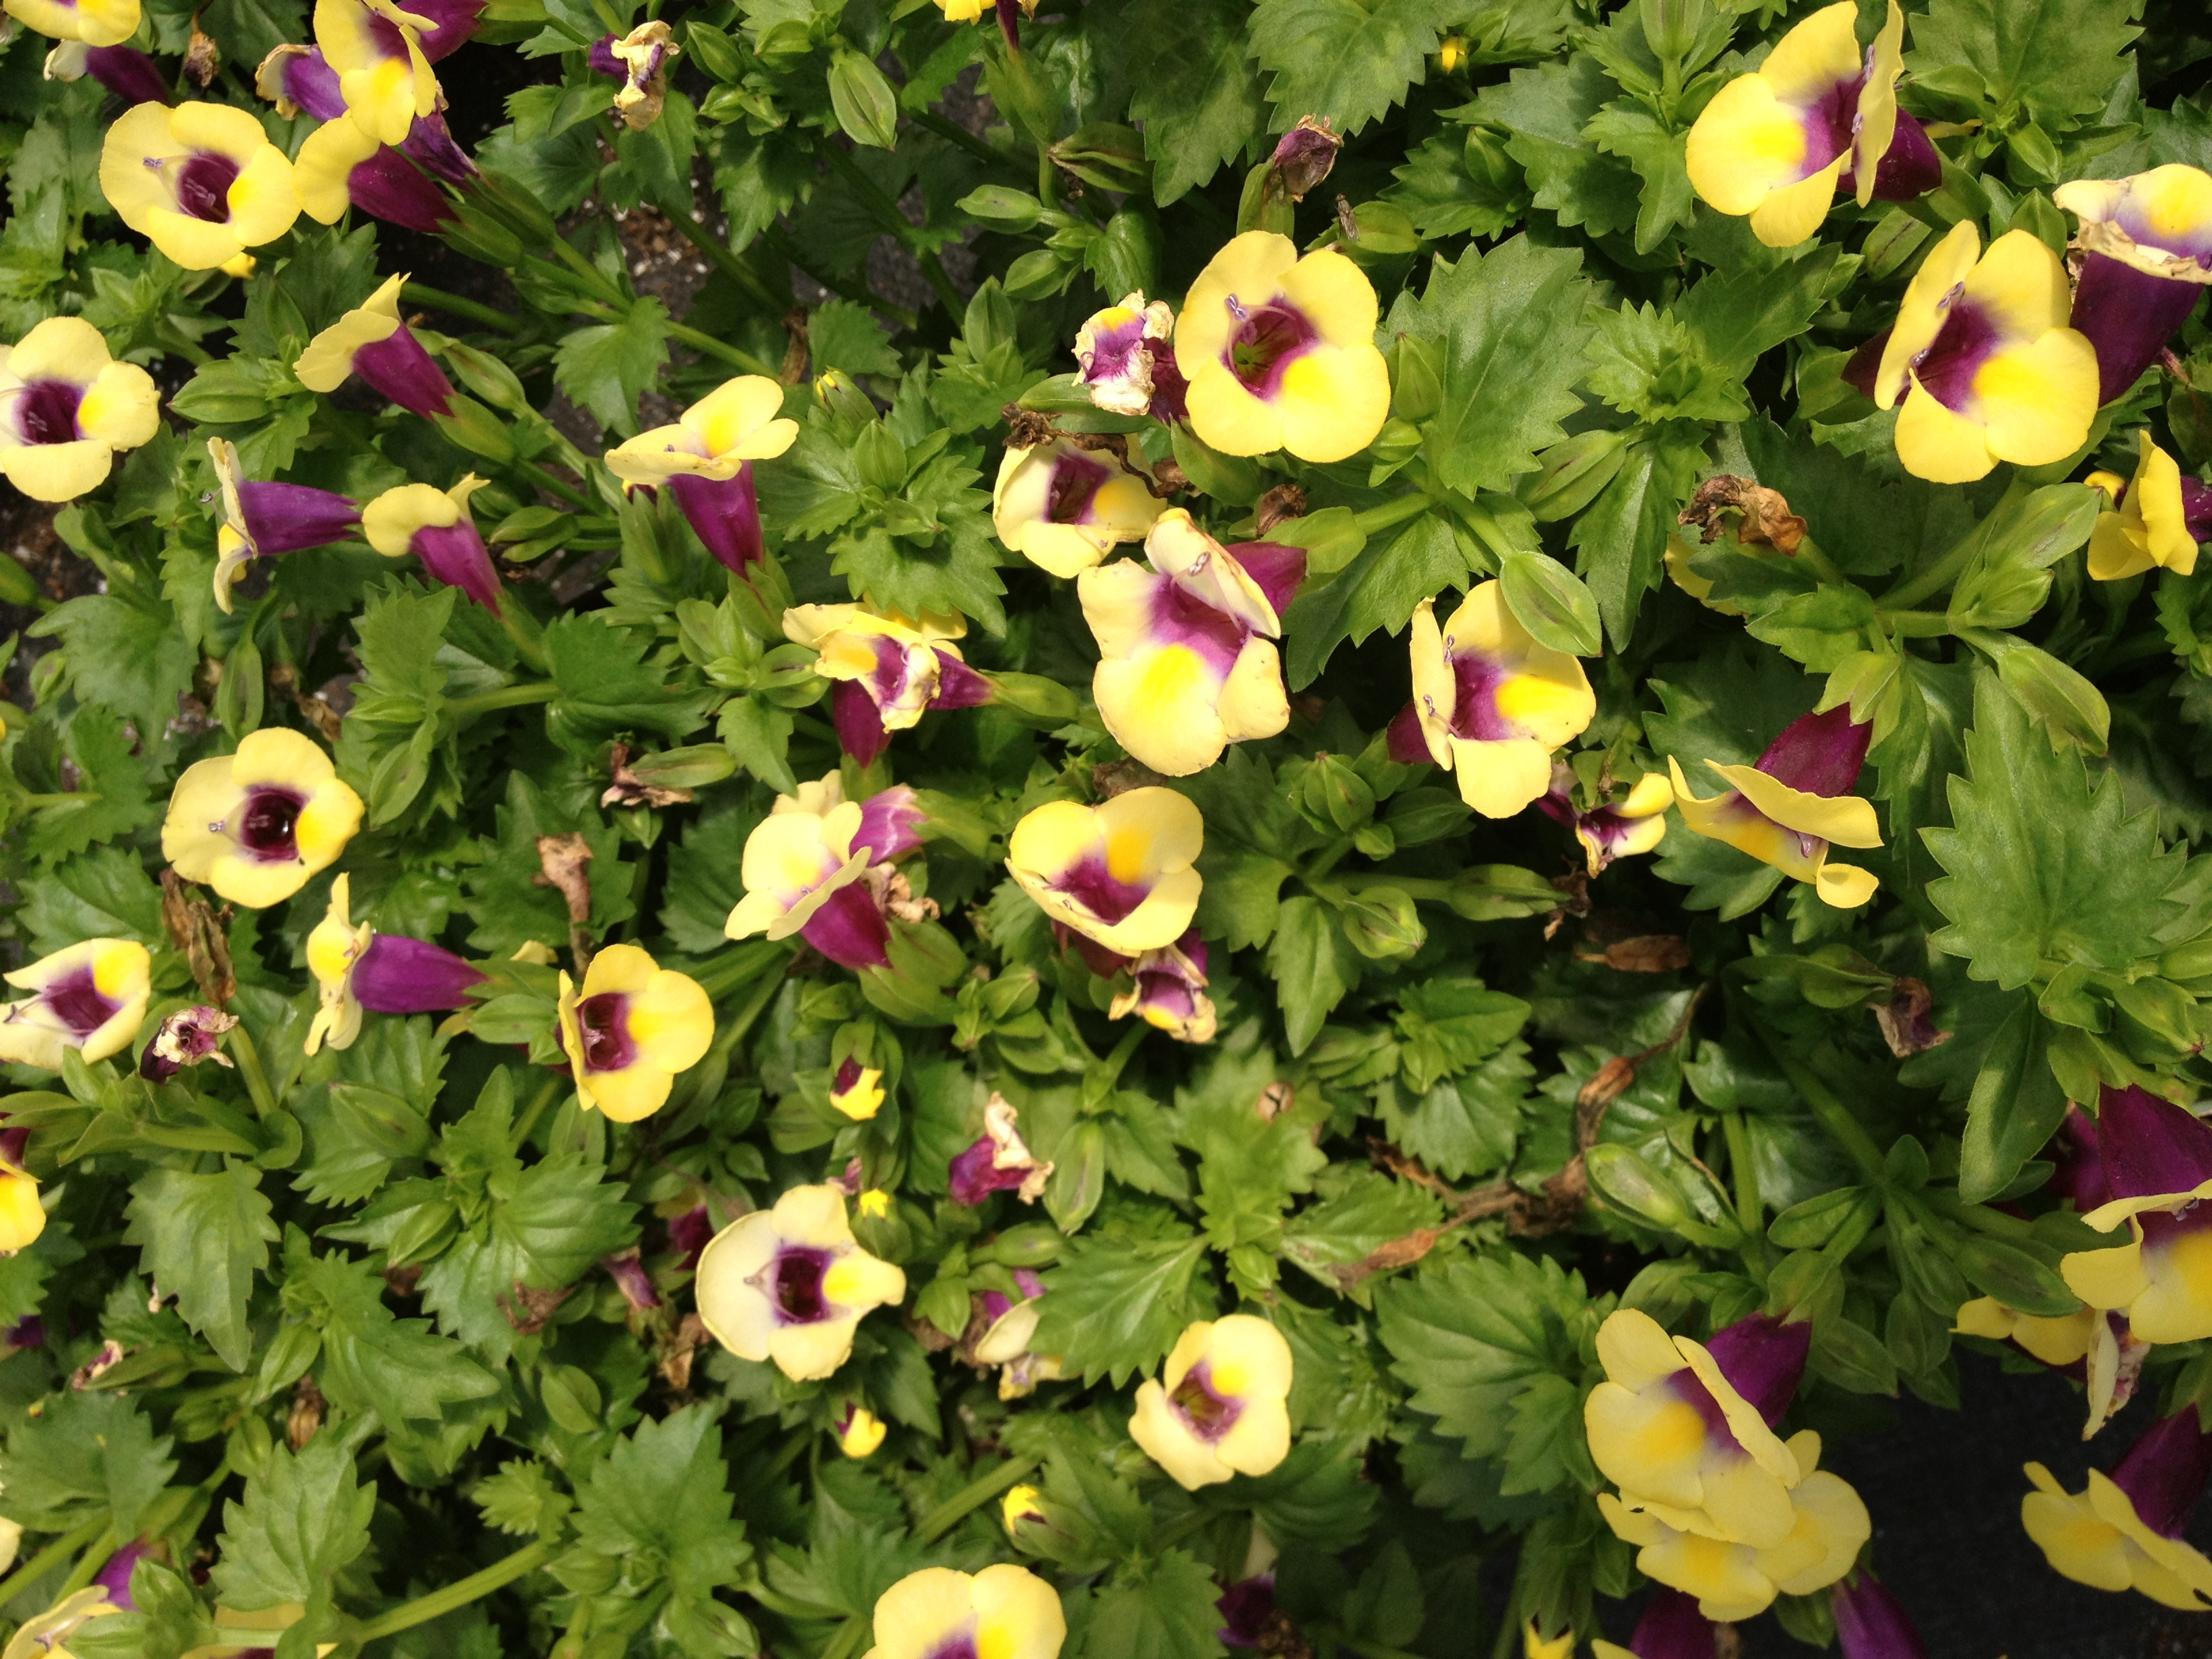 """Torenia has seen improved popularity in recent years. It's unique flower shape and it's trailing habits lend it a unique opportunity as an excellent shade item. It can do well during the humid summer months and works best in planters and baskets. It is available in 4.5"""" pots."""